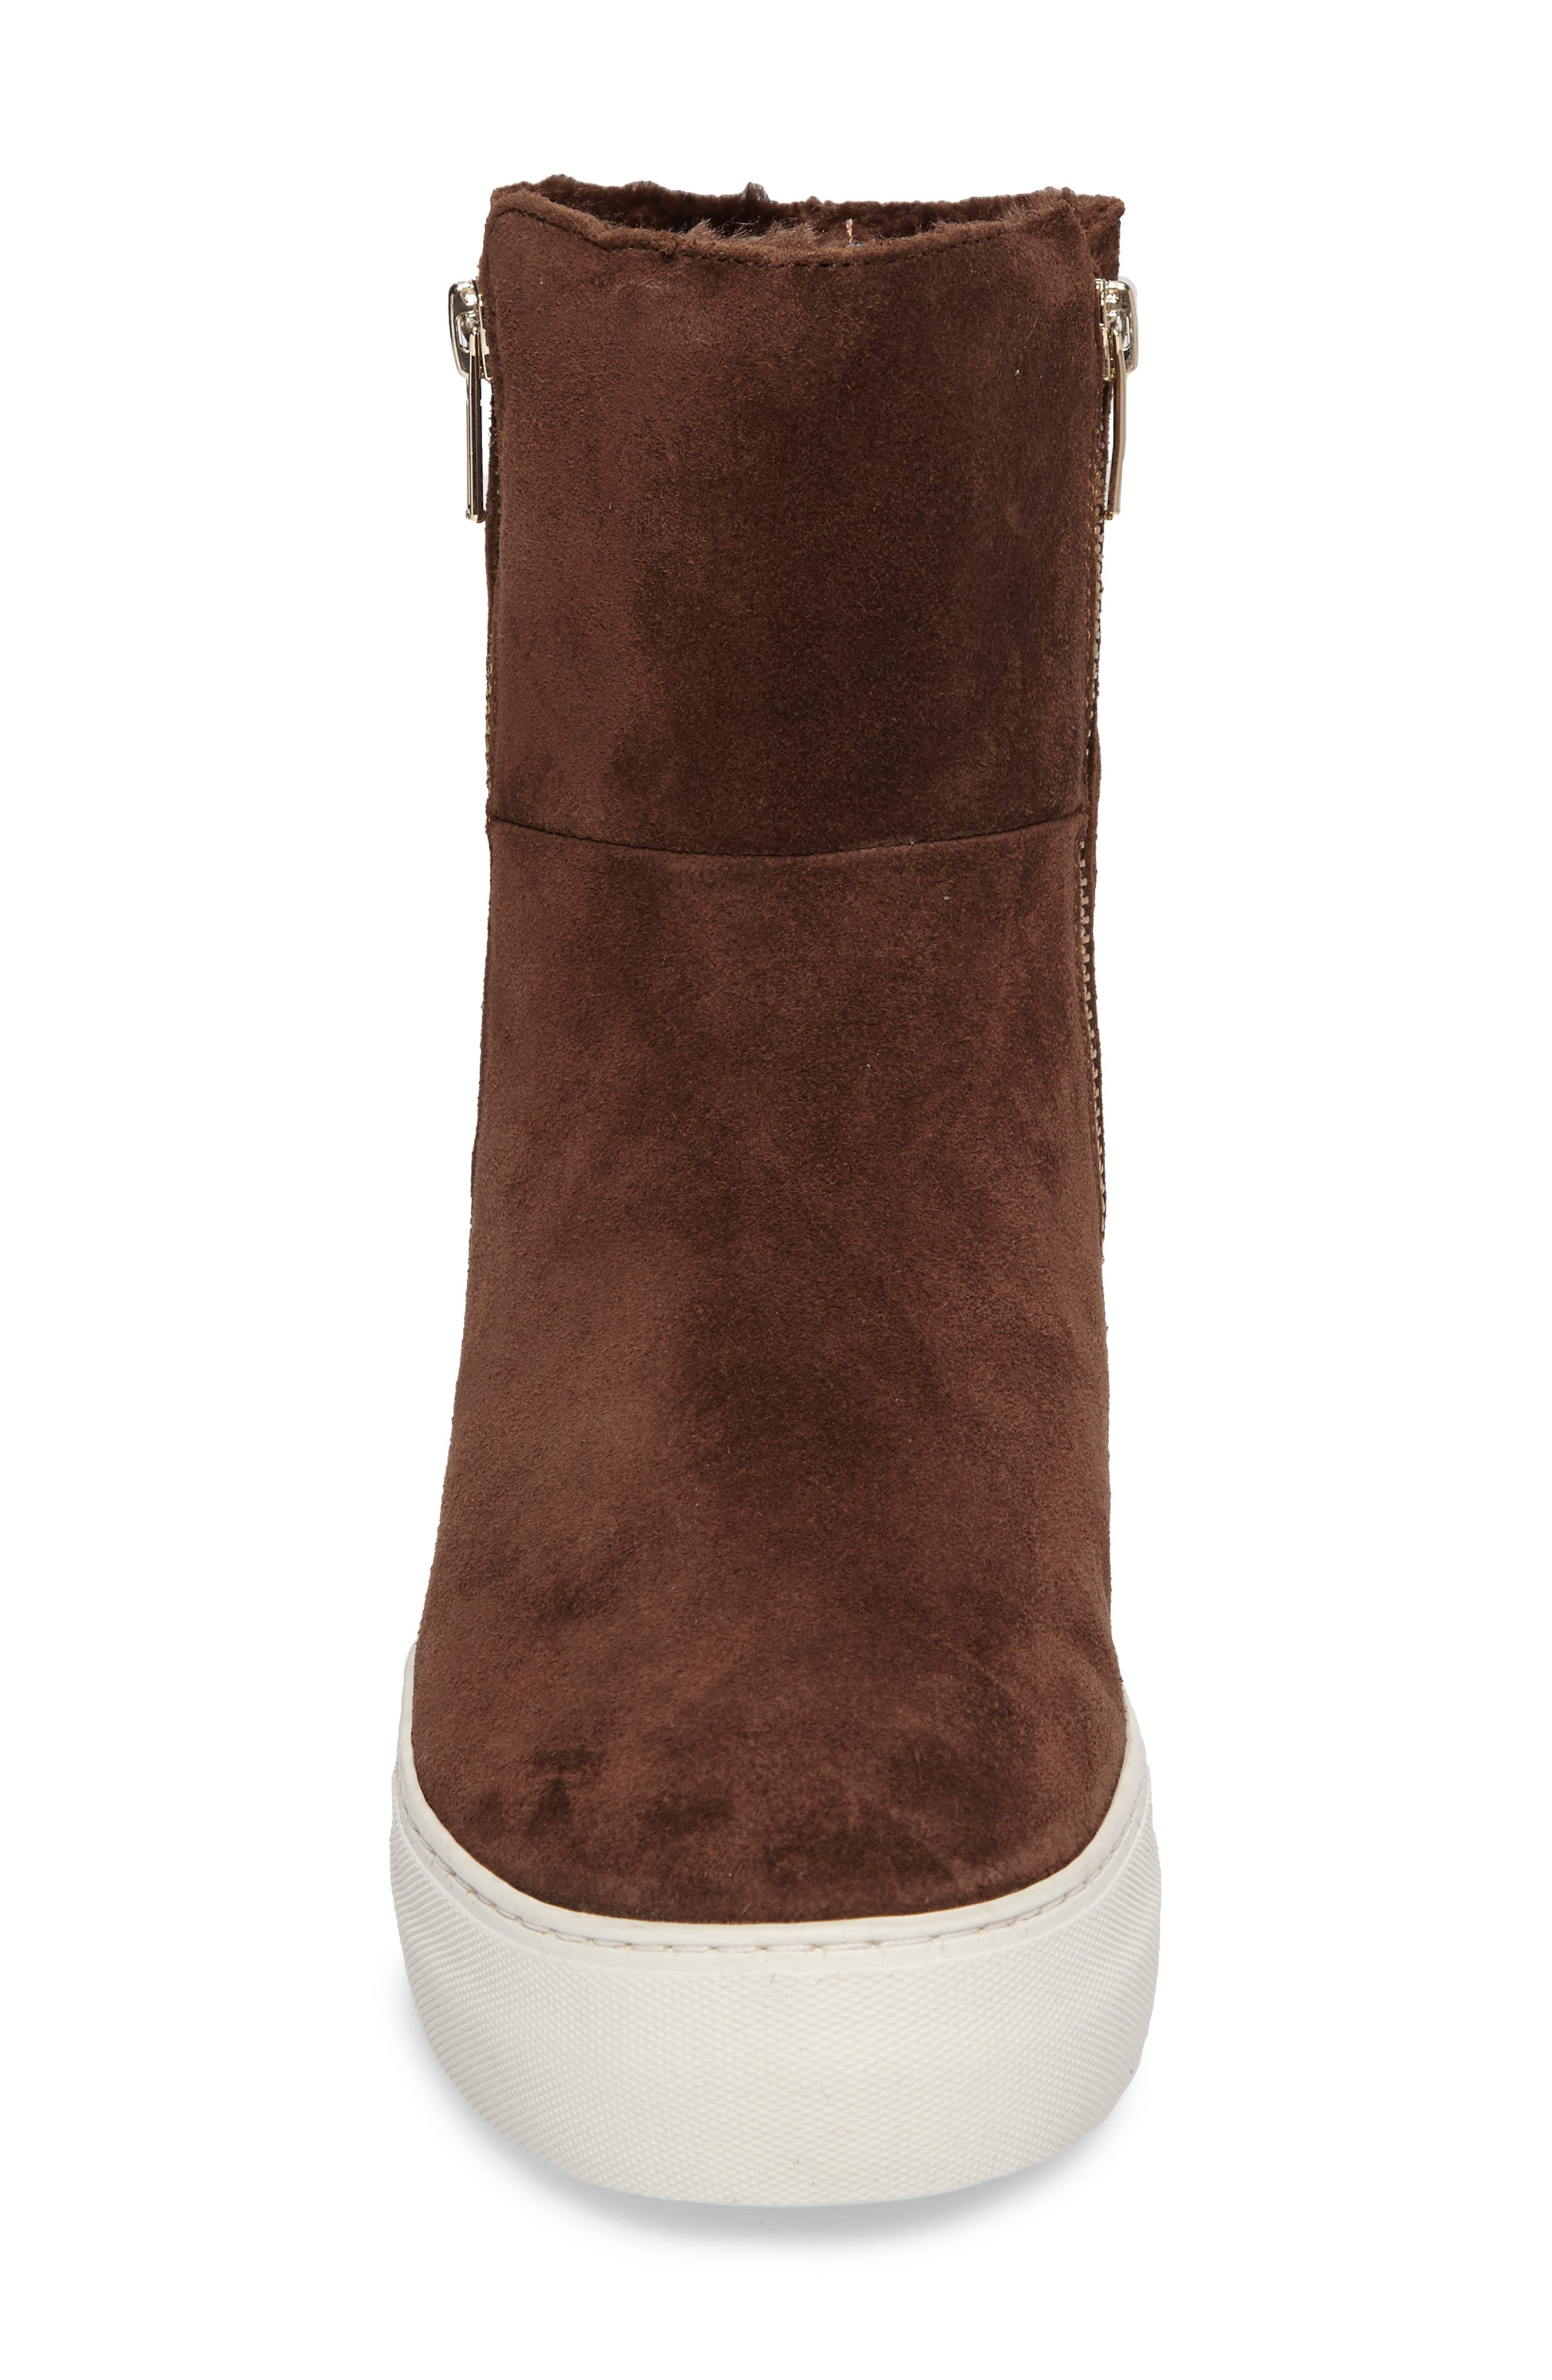 Allie Faux Fur Lined Platform Boot,                             Alternate thumbnail 4, color,                             BROWN SUEDE